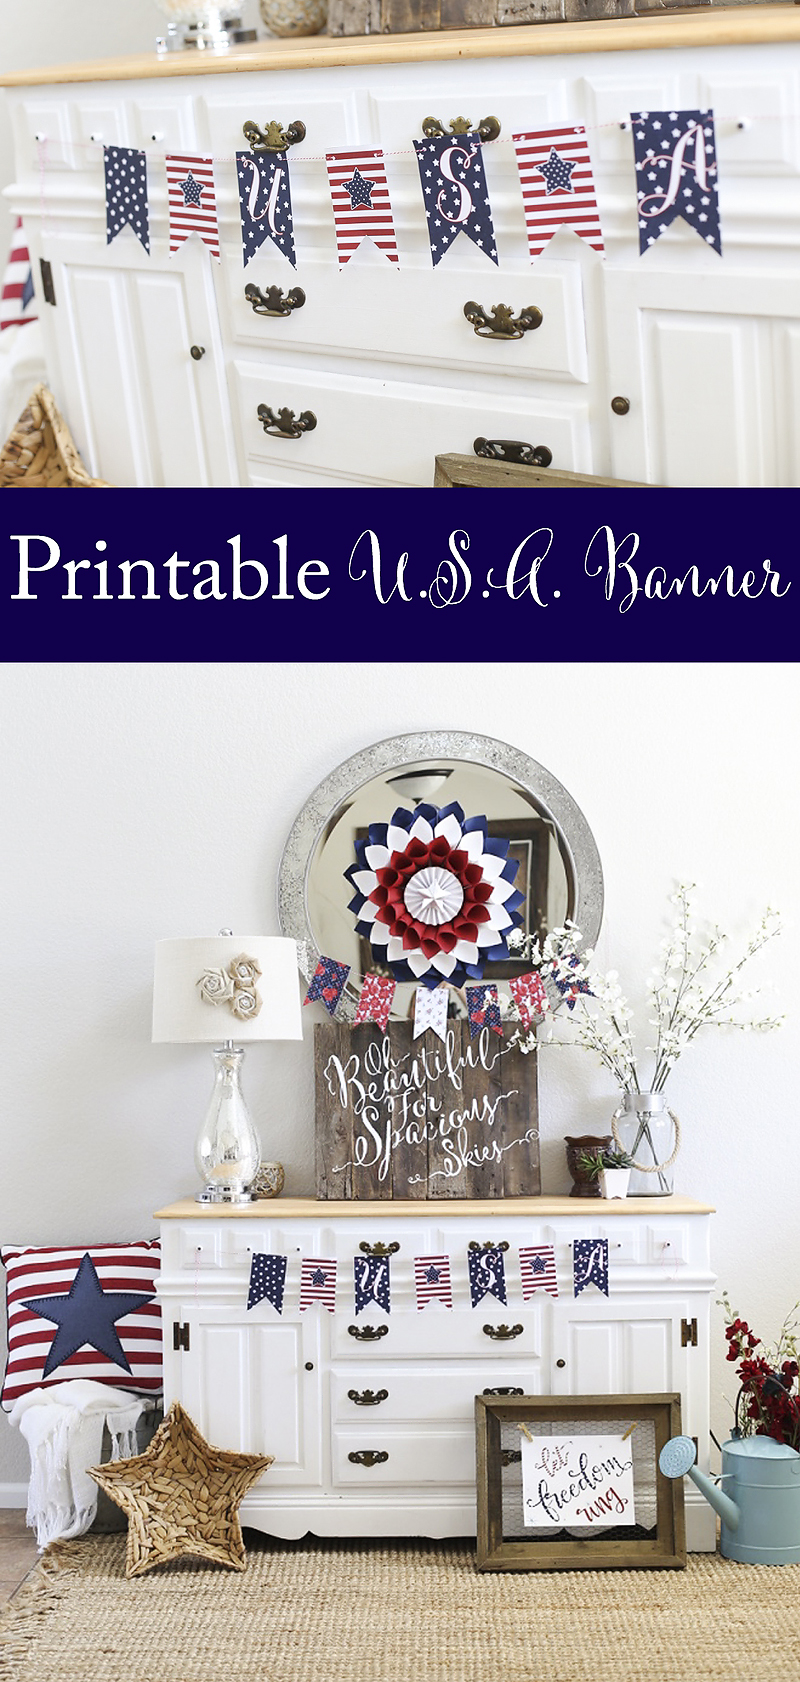 Printable USA Banner and tons of fun free printables and projects!